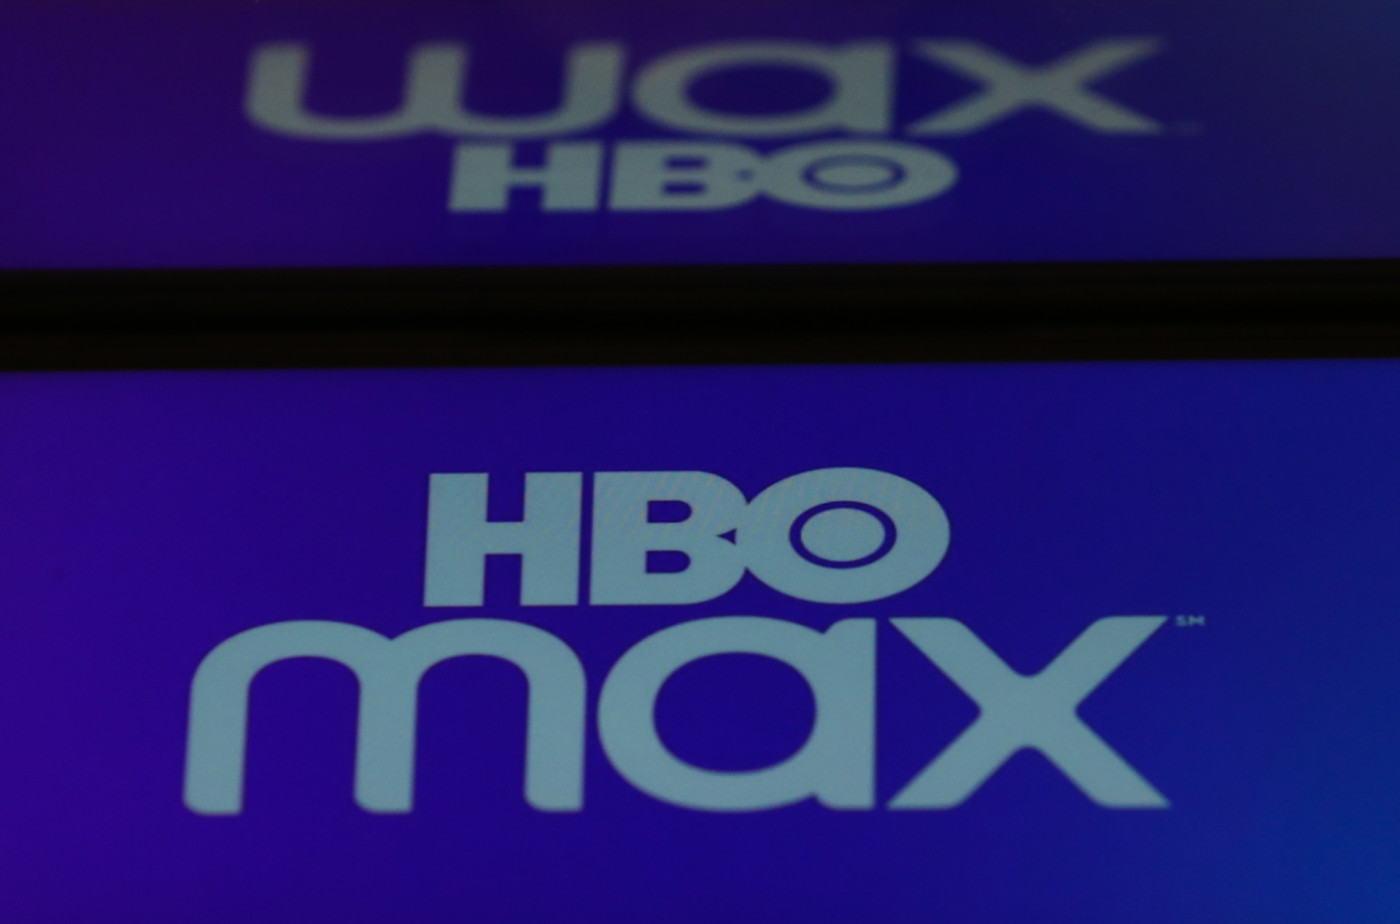 HBO Max logos are displayed on a mobile phone and a laptop screen